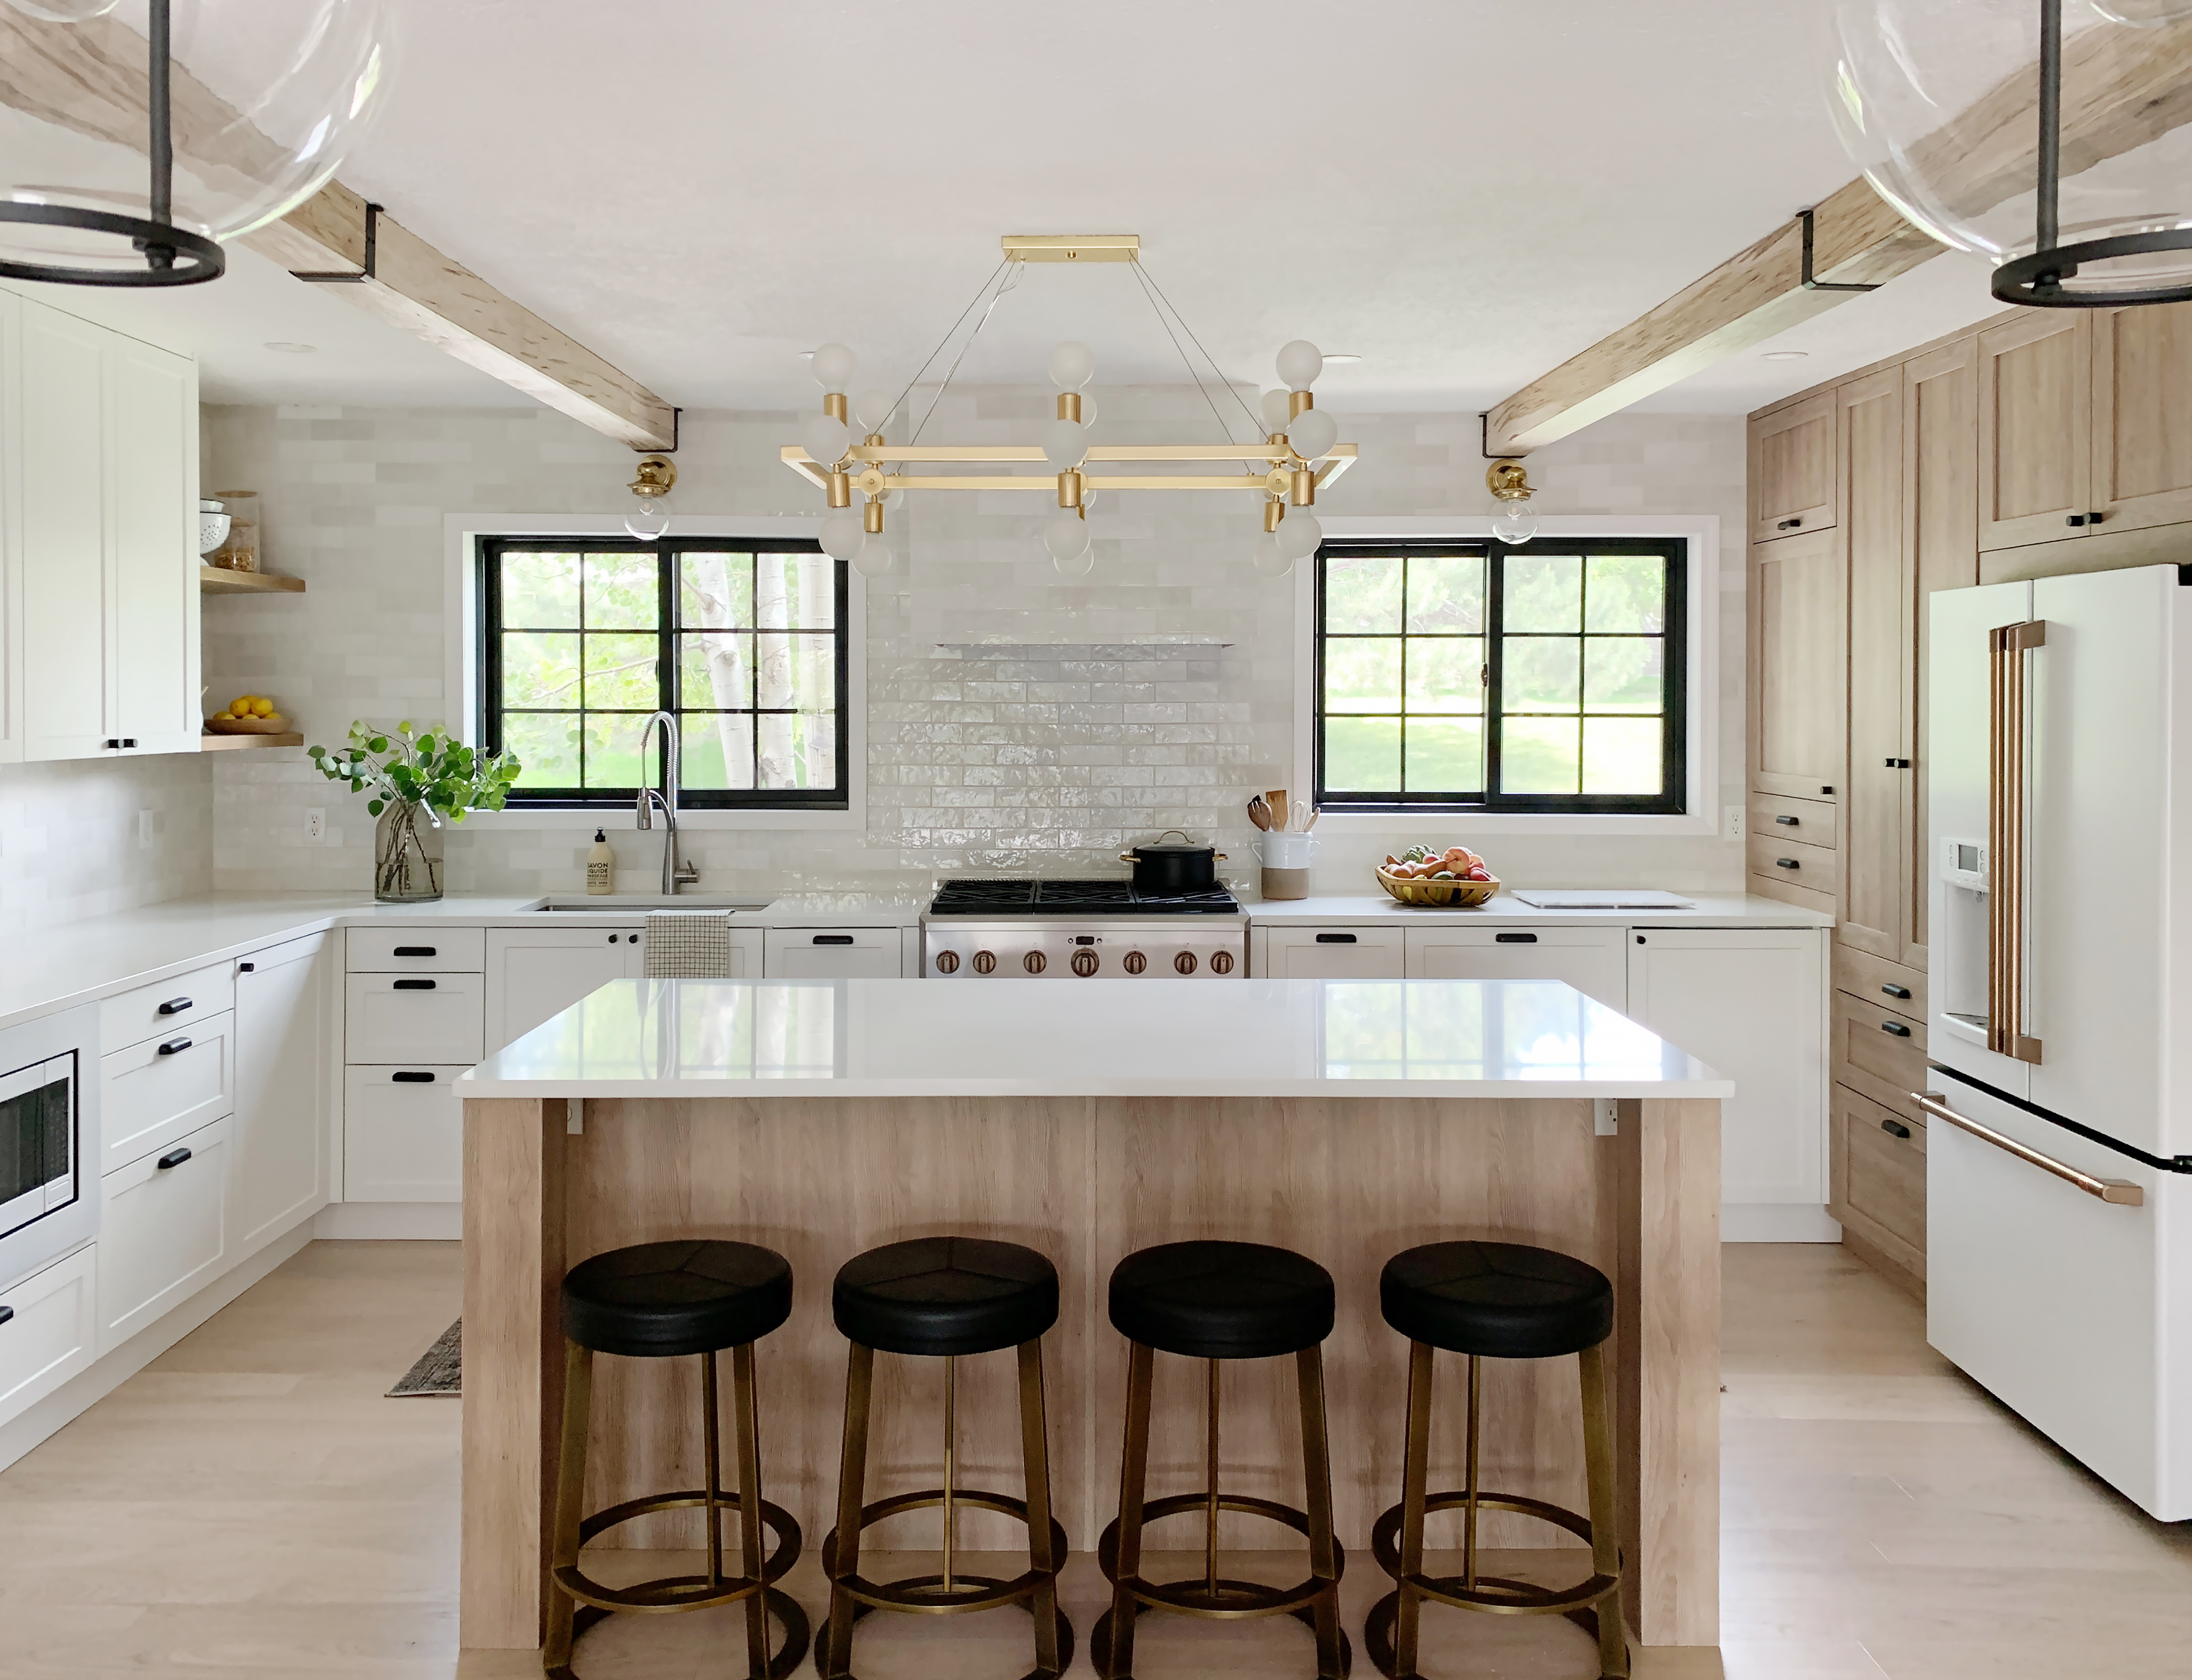 This Stunning Kitchen Makeover by Chris Loves Julia Features an Ingenious IKEA Hack